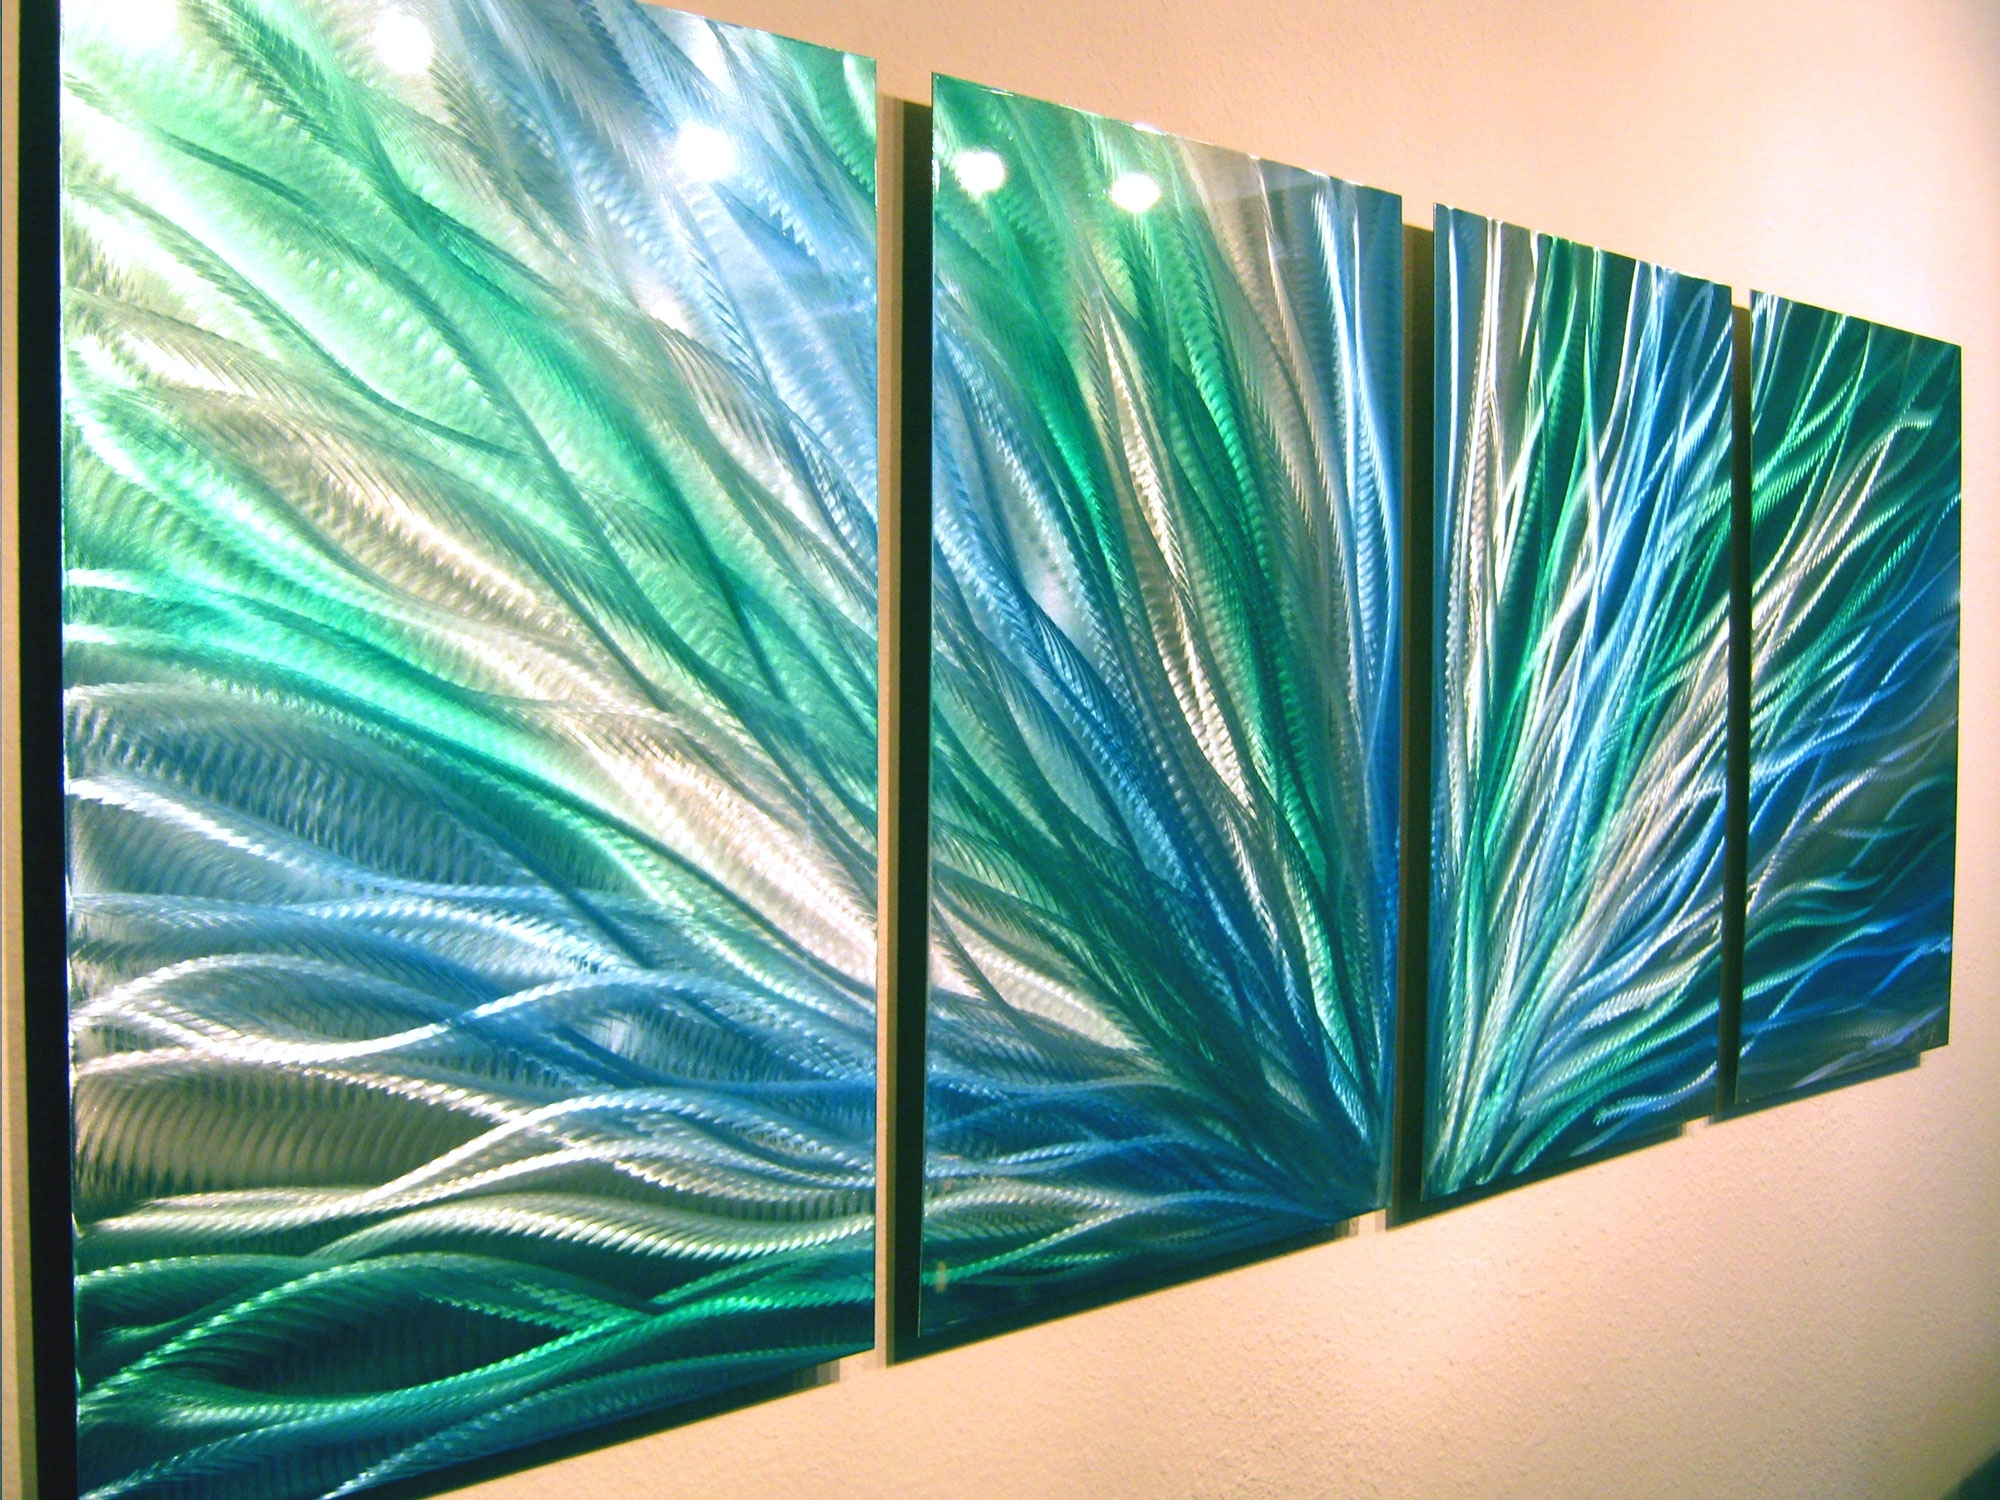 Classy 10+ Abstract Metal Wall Art Design Inspiration Of Best 25+ Regarding Most Recently Released Kindred Abstract Metal Wall Art (View 8 of 20)